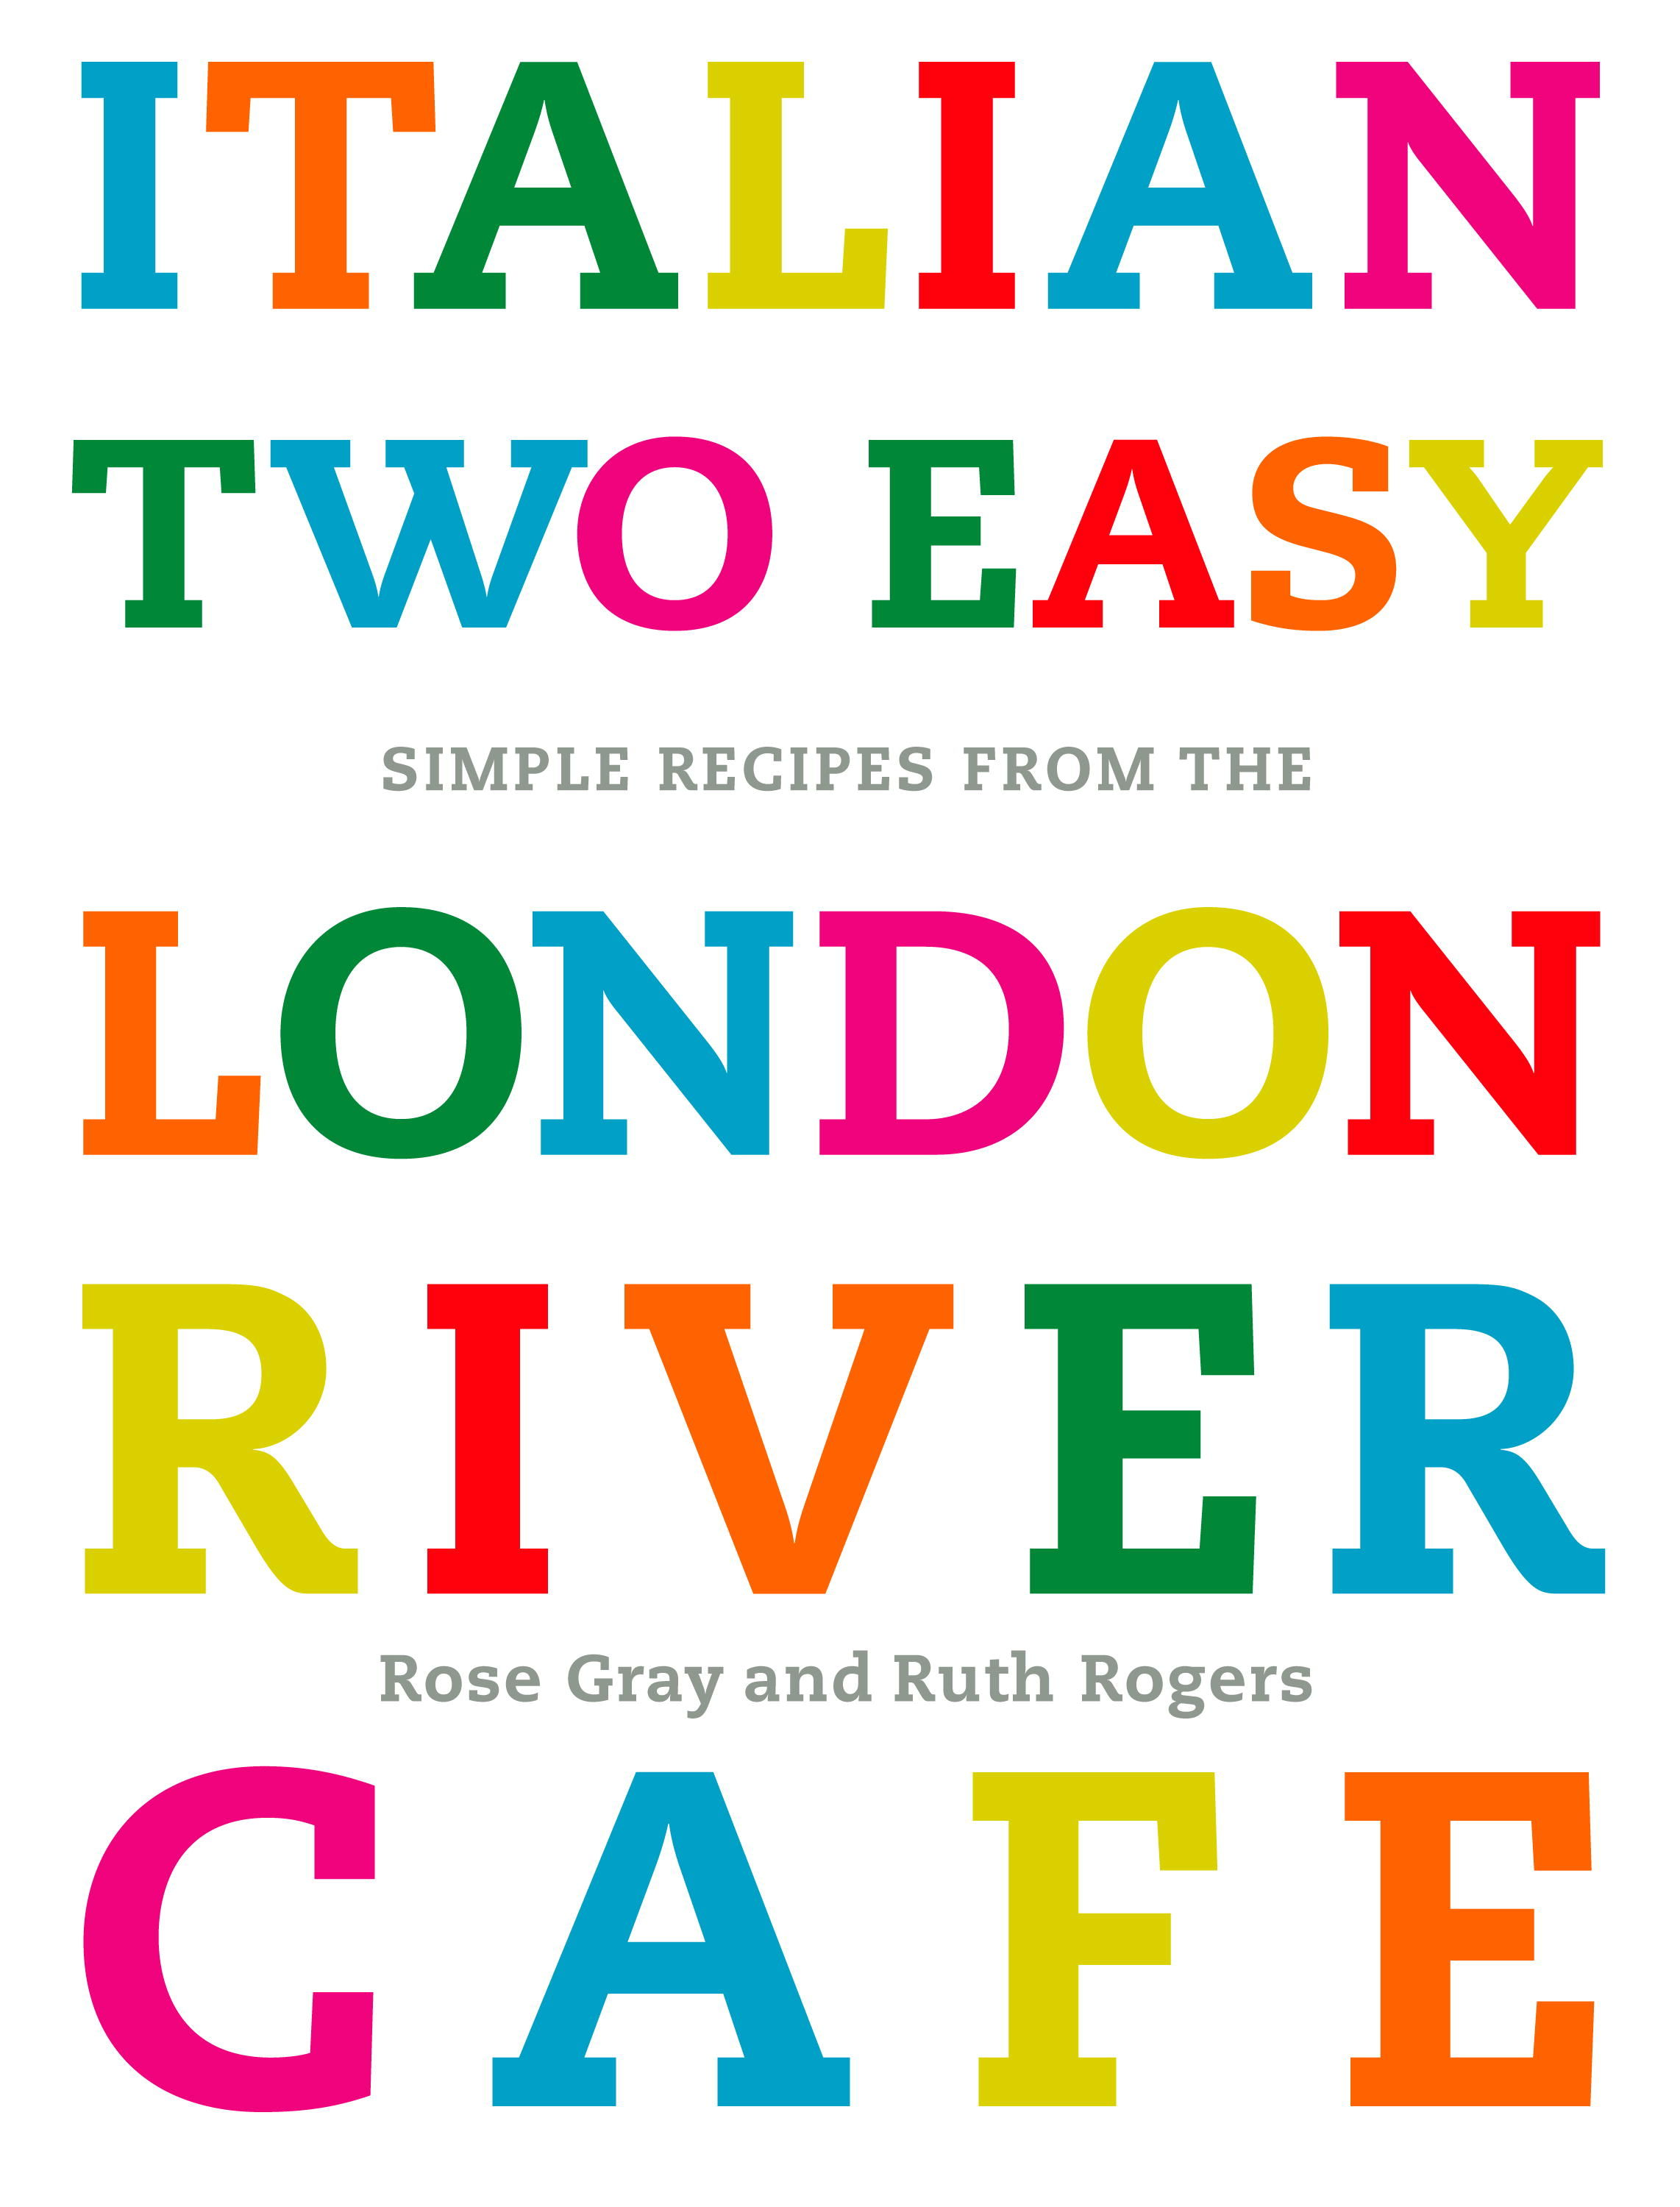 River Cafe London Recipes